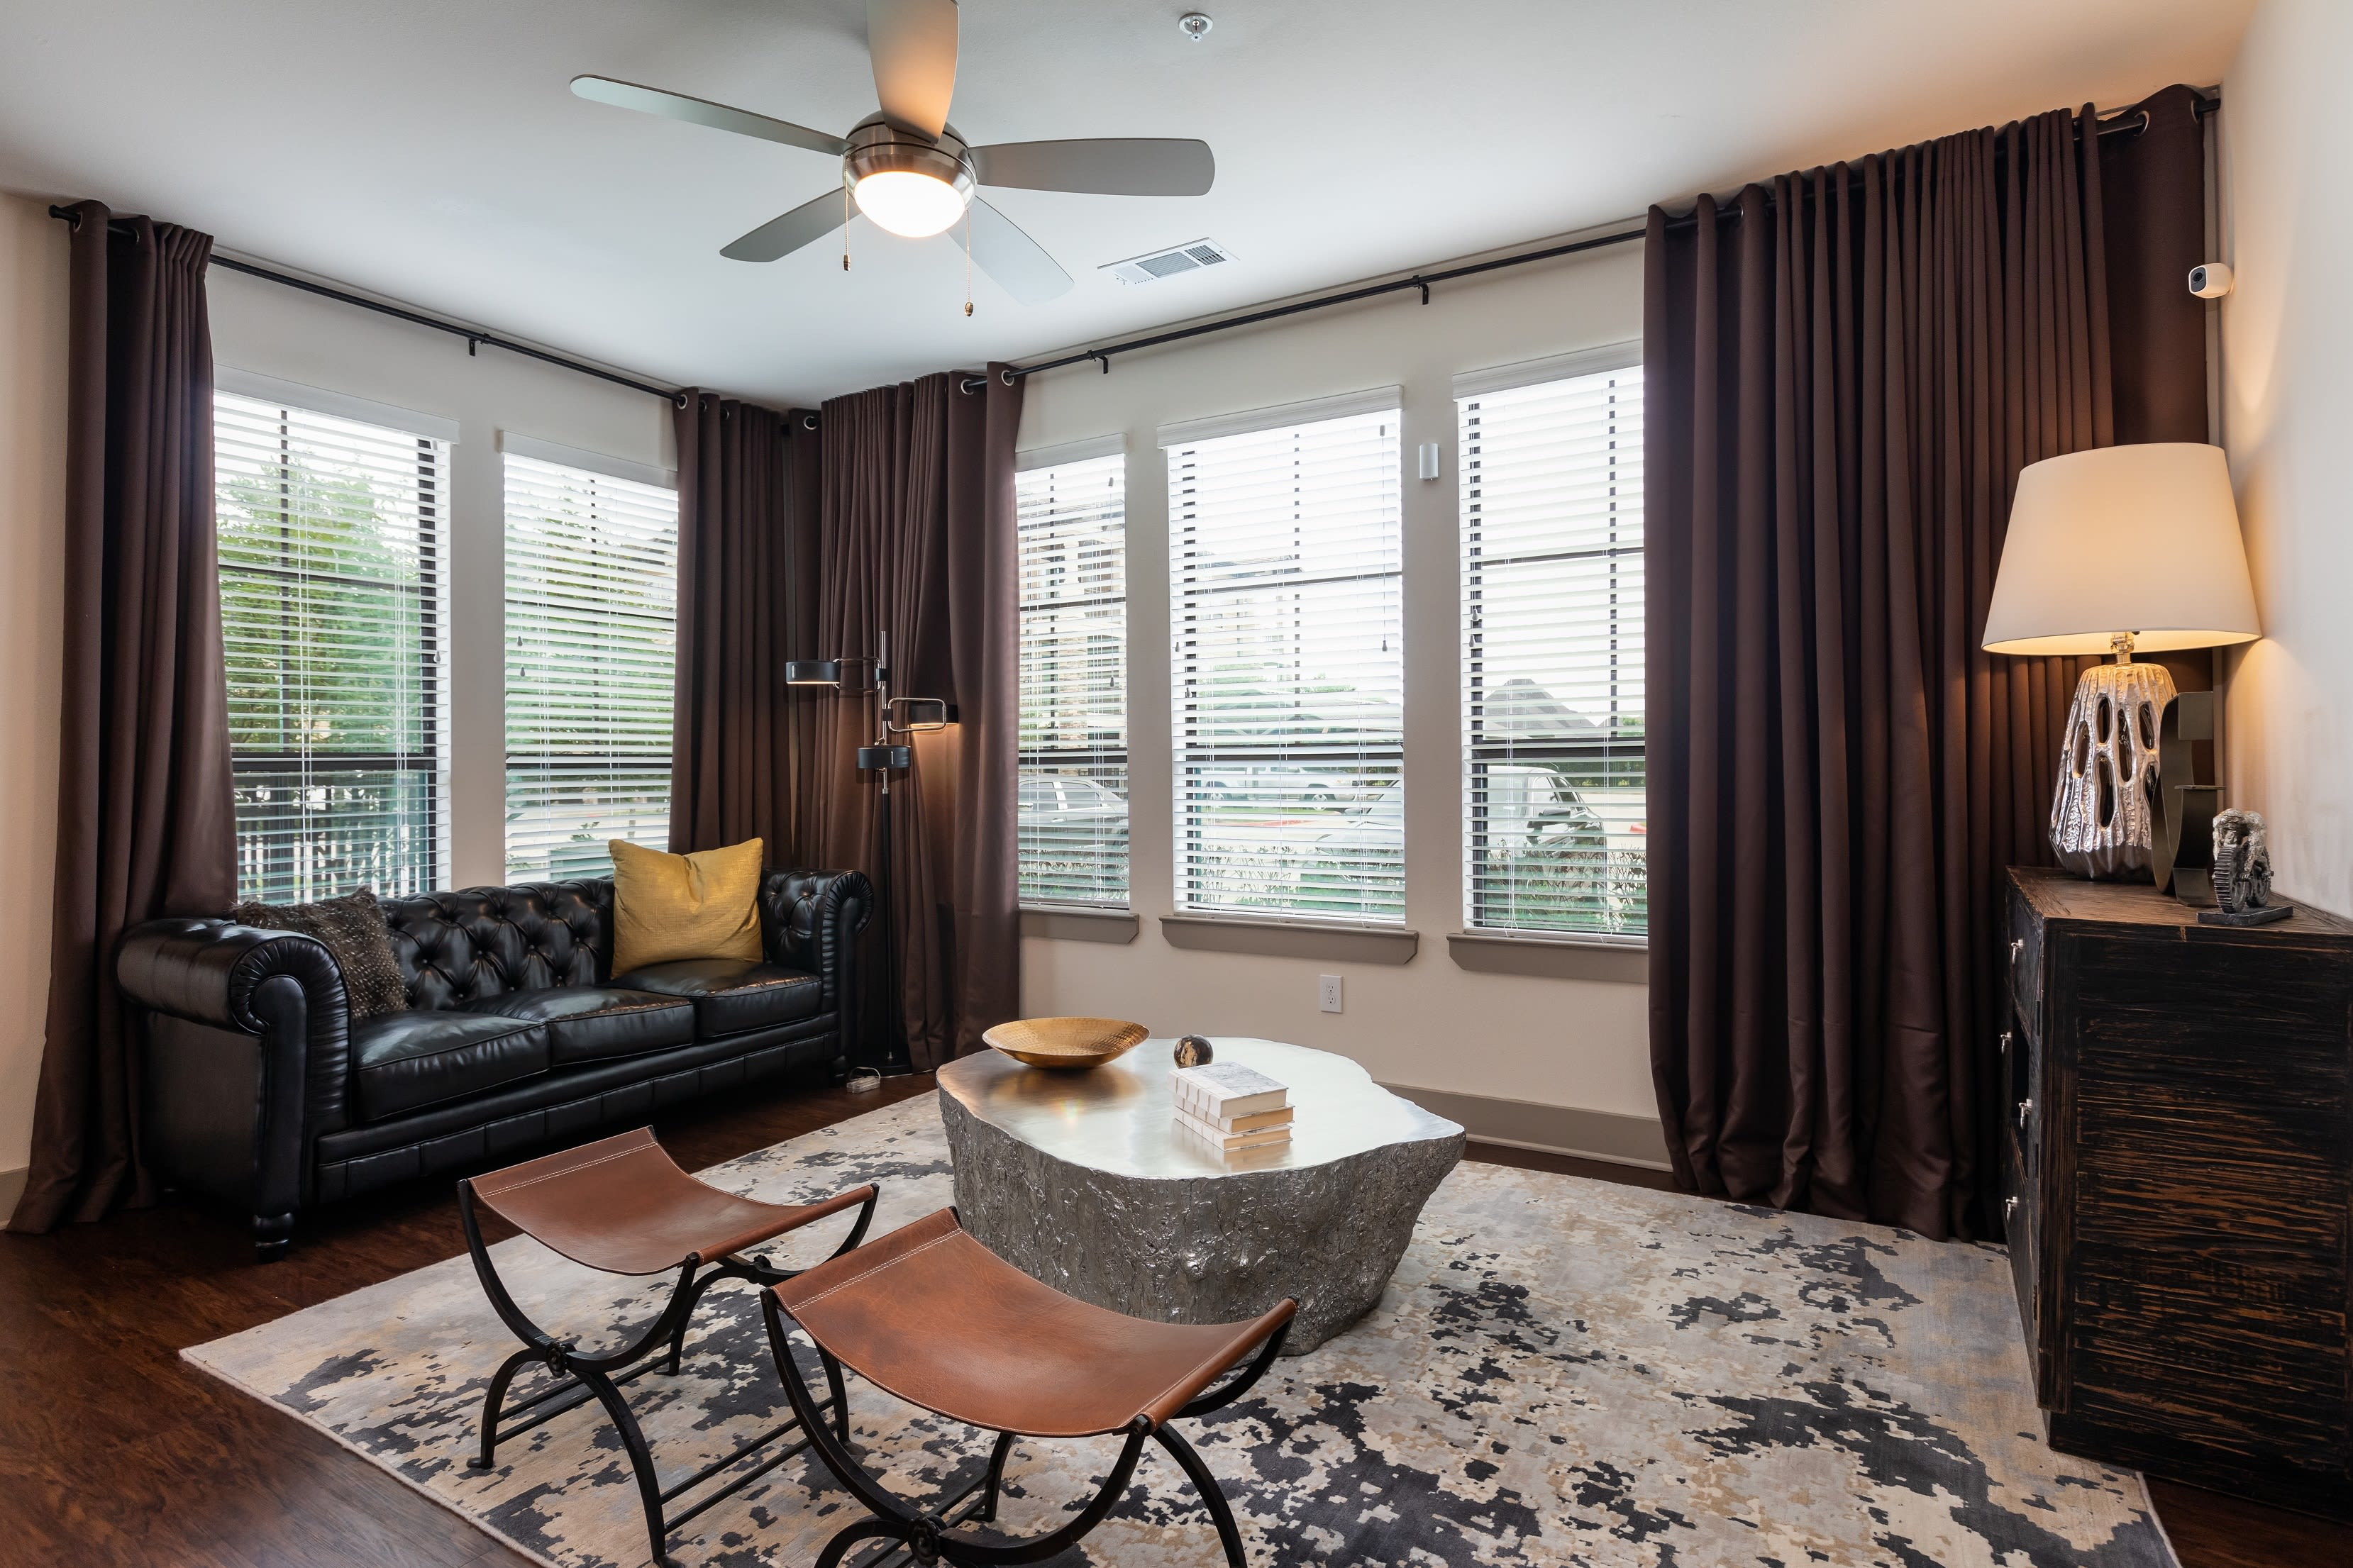 Well-decorated open-concept living space in a model home at Waterford Trails in Spring, Texas